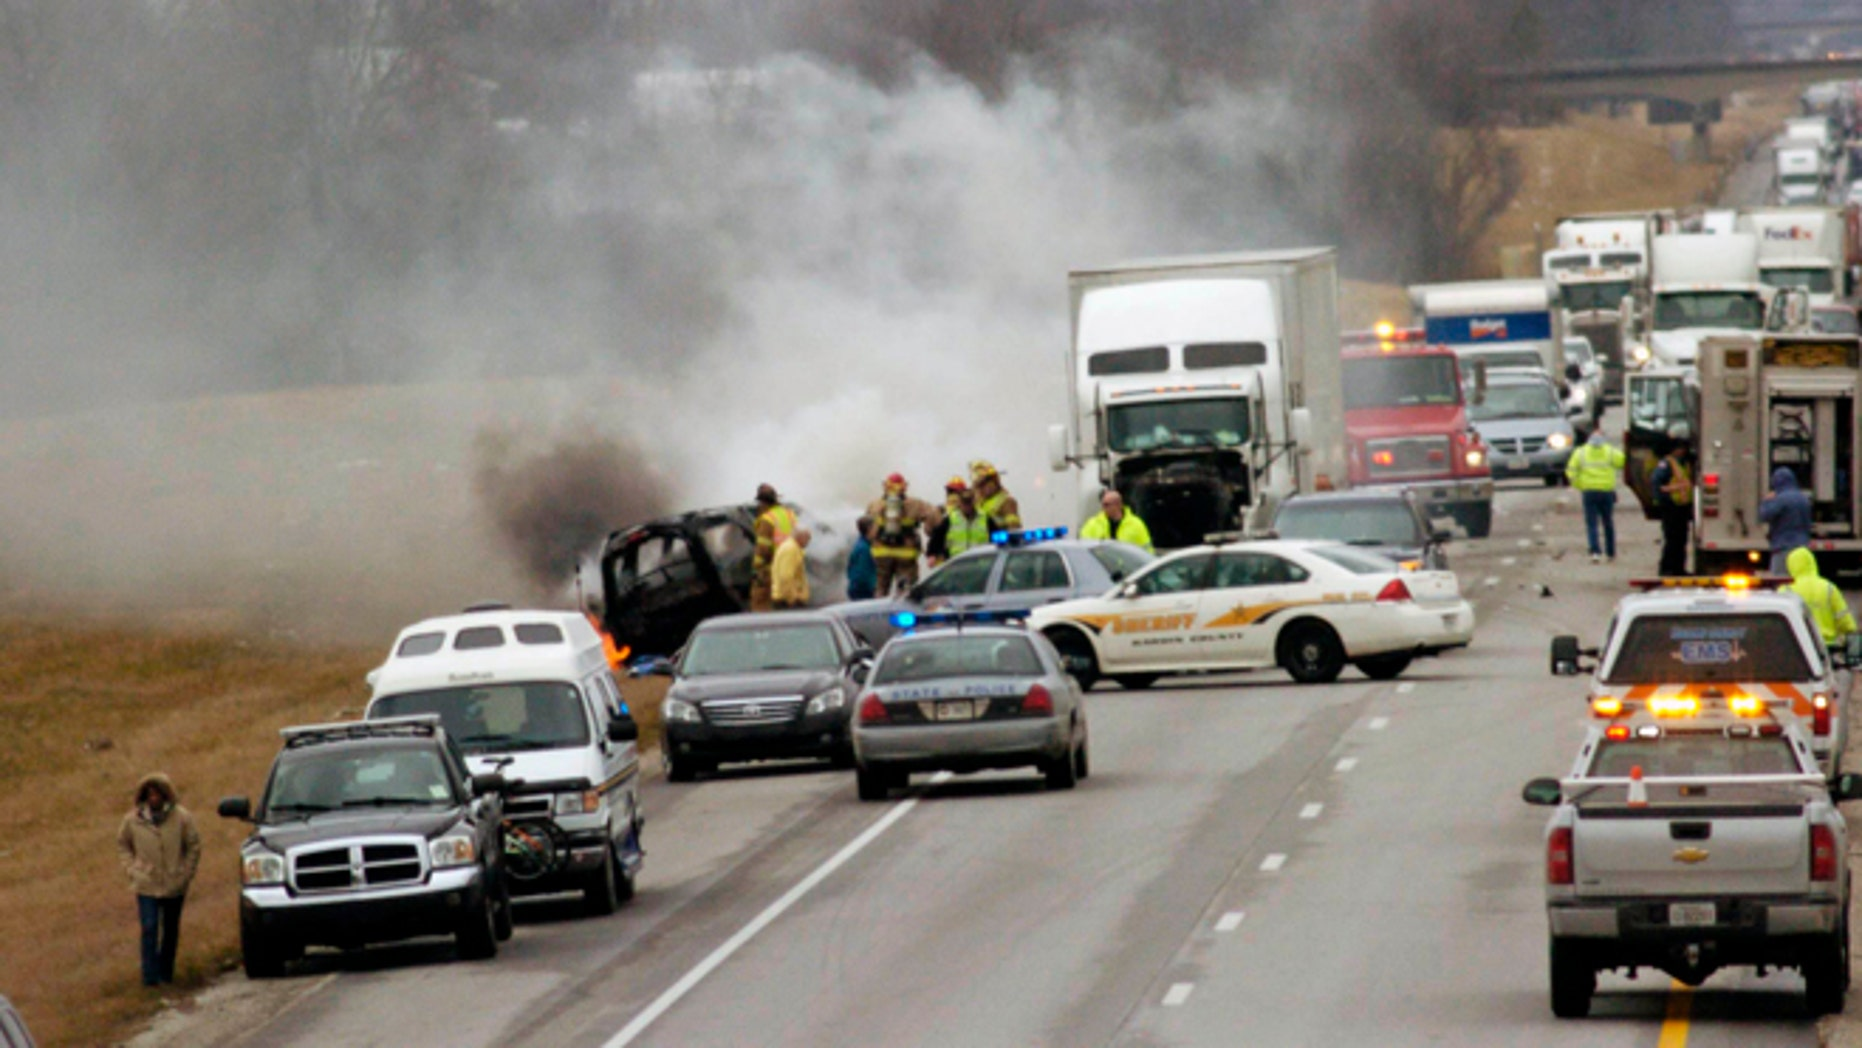 March 2, 2013: Emergency personnel work at the scene of a multi-vehicle wreck on Interstate 65 near the 82 mile marker north of Sonora, Ky.